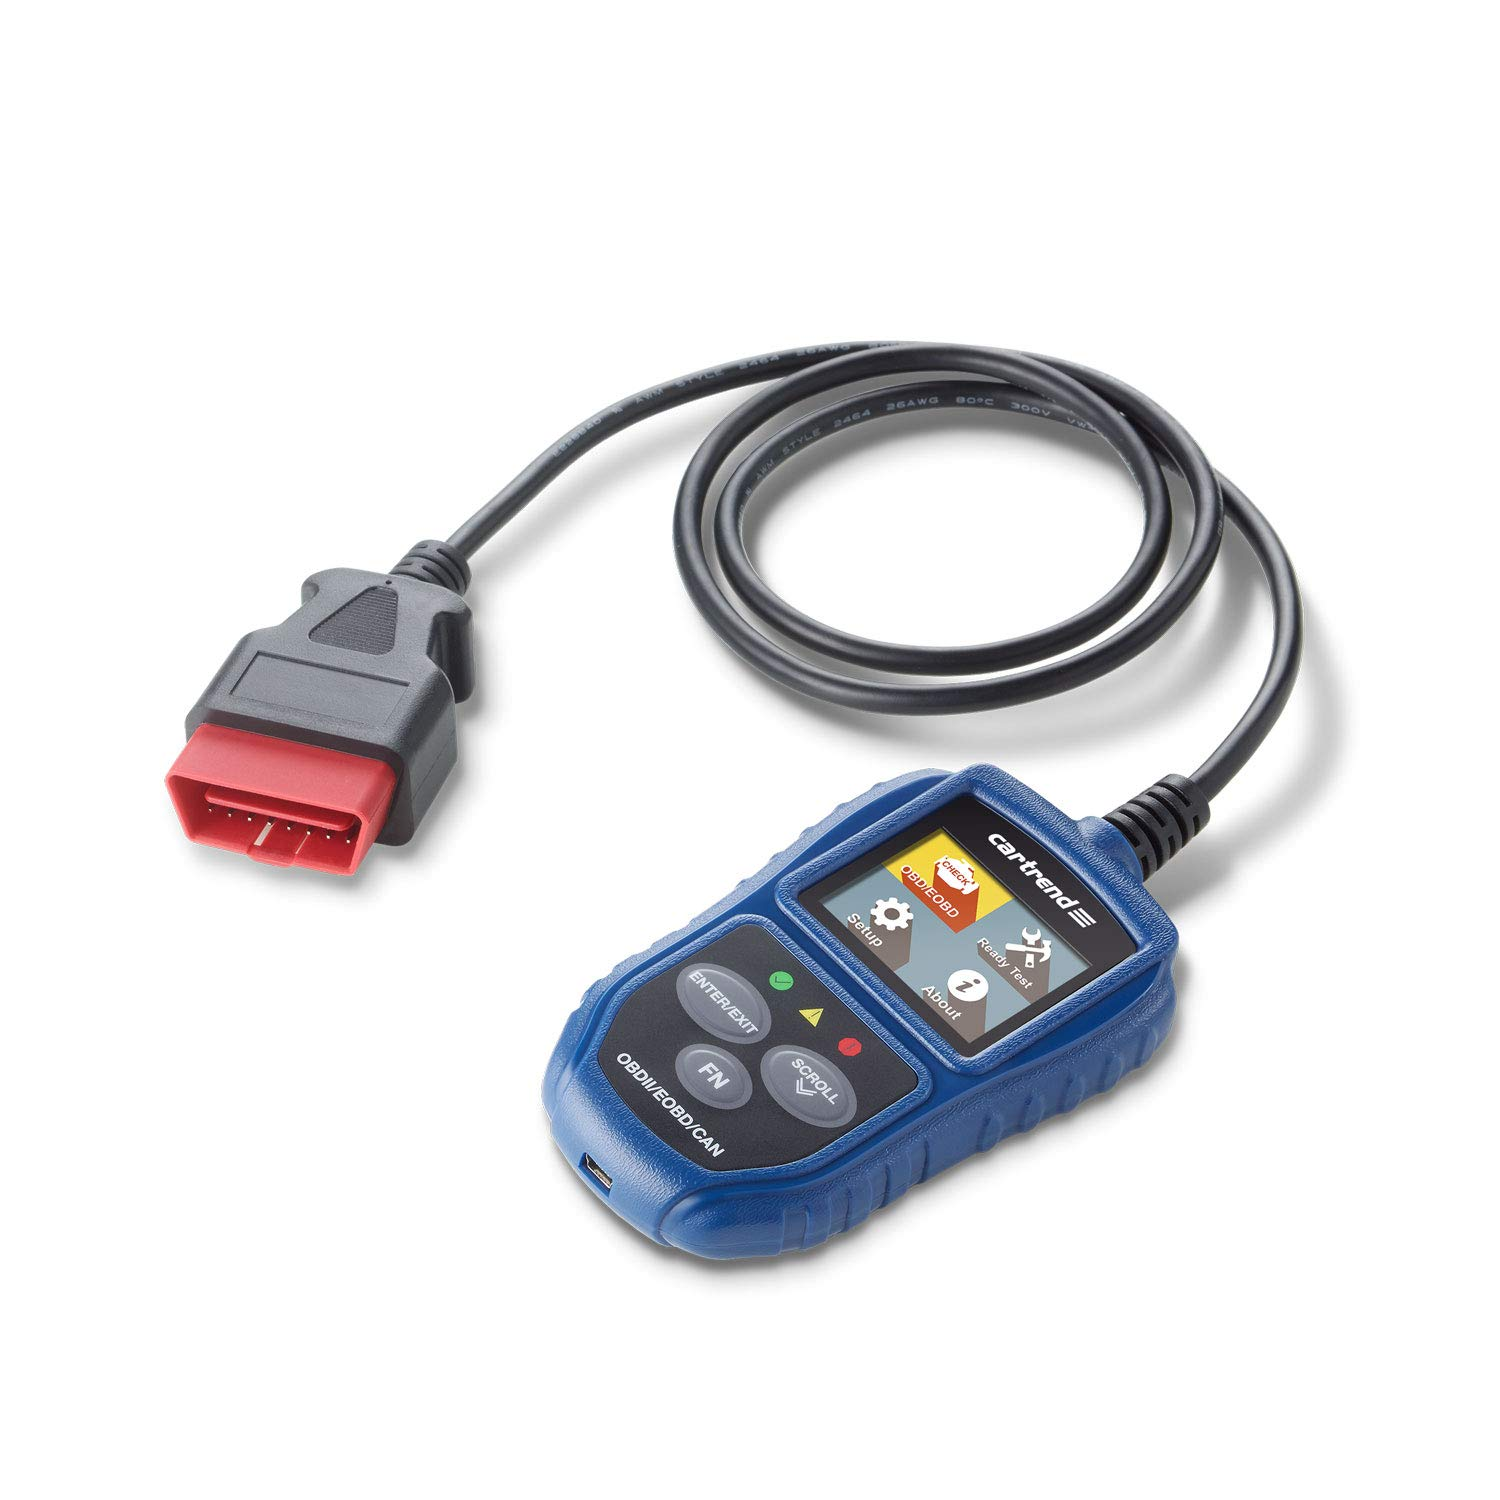 CARTREND 10278 OBD II Diagnostic Tool